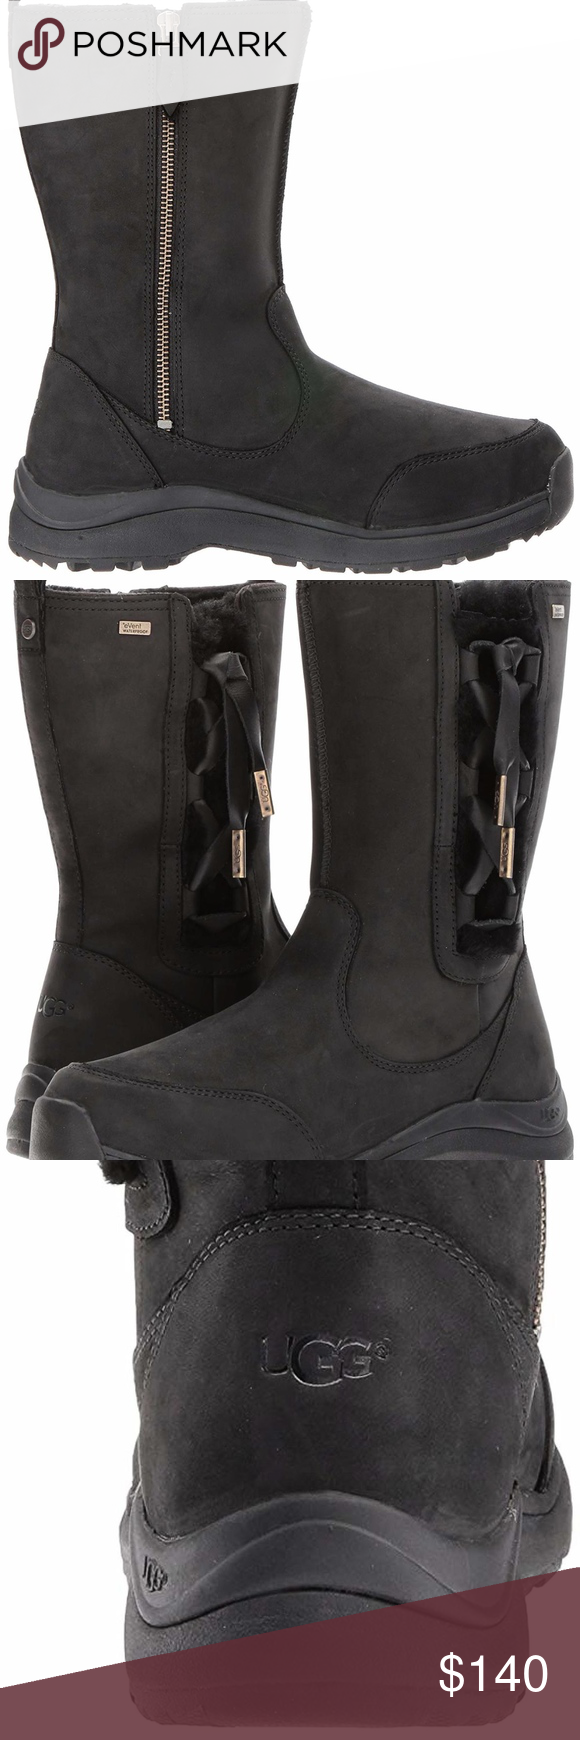 001a74ad36f Ugg Suvi Waterproof Leather boots NEW Model: 1018333 Satin corset ...